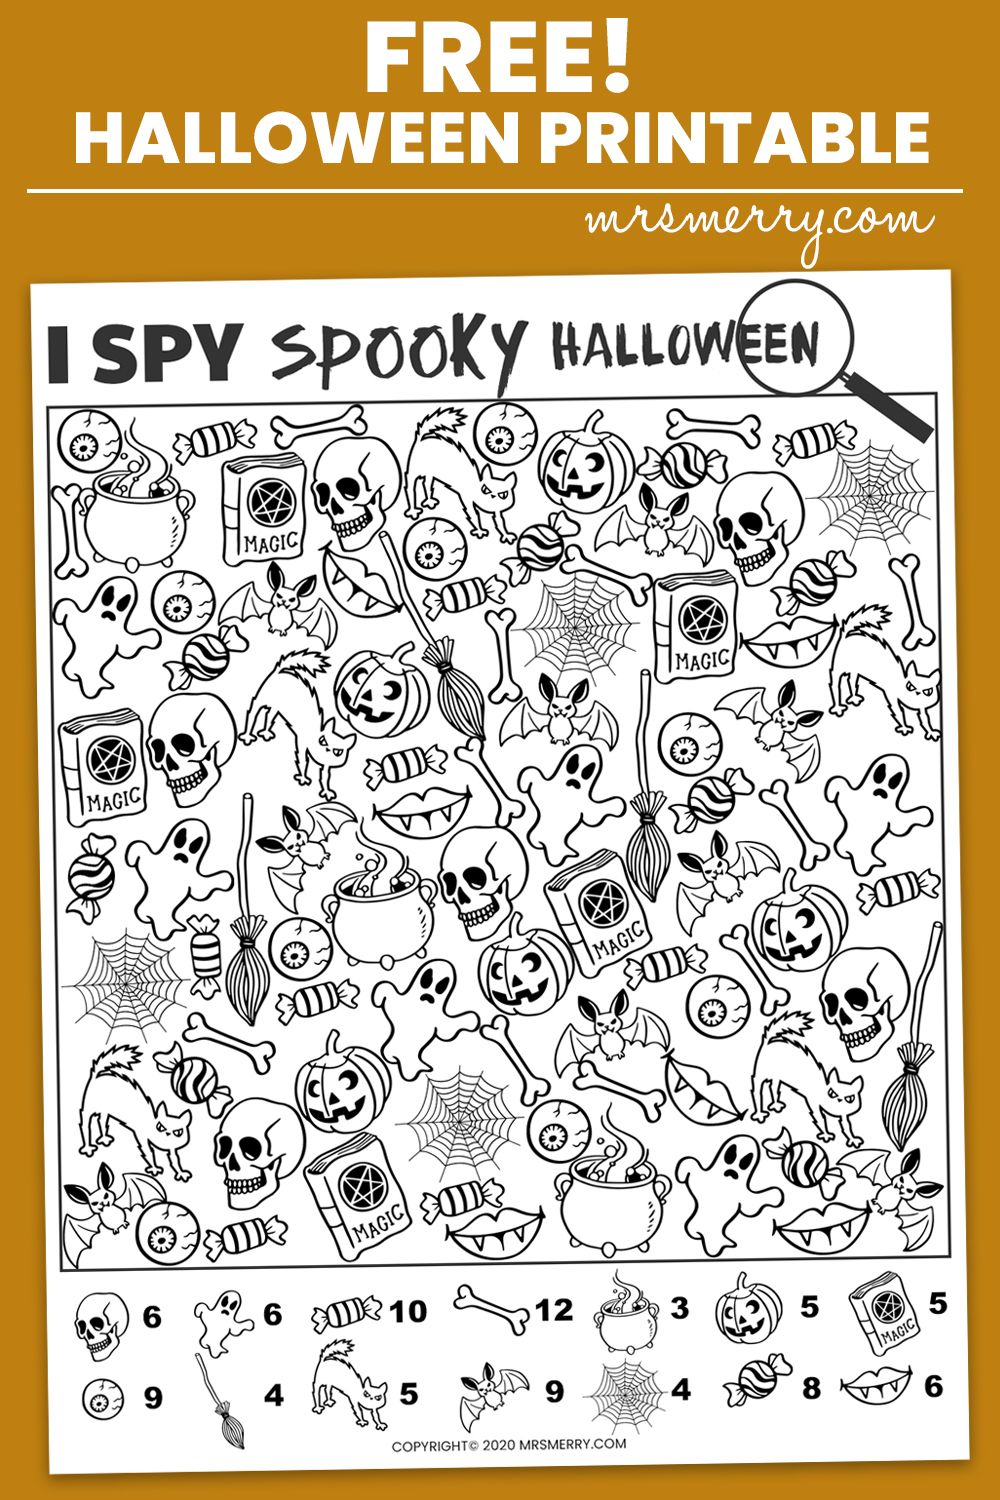 Free I Spy Halloween Printable - Spooky Halloween Activity